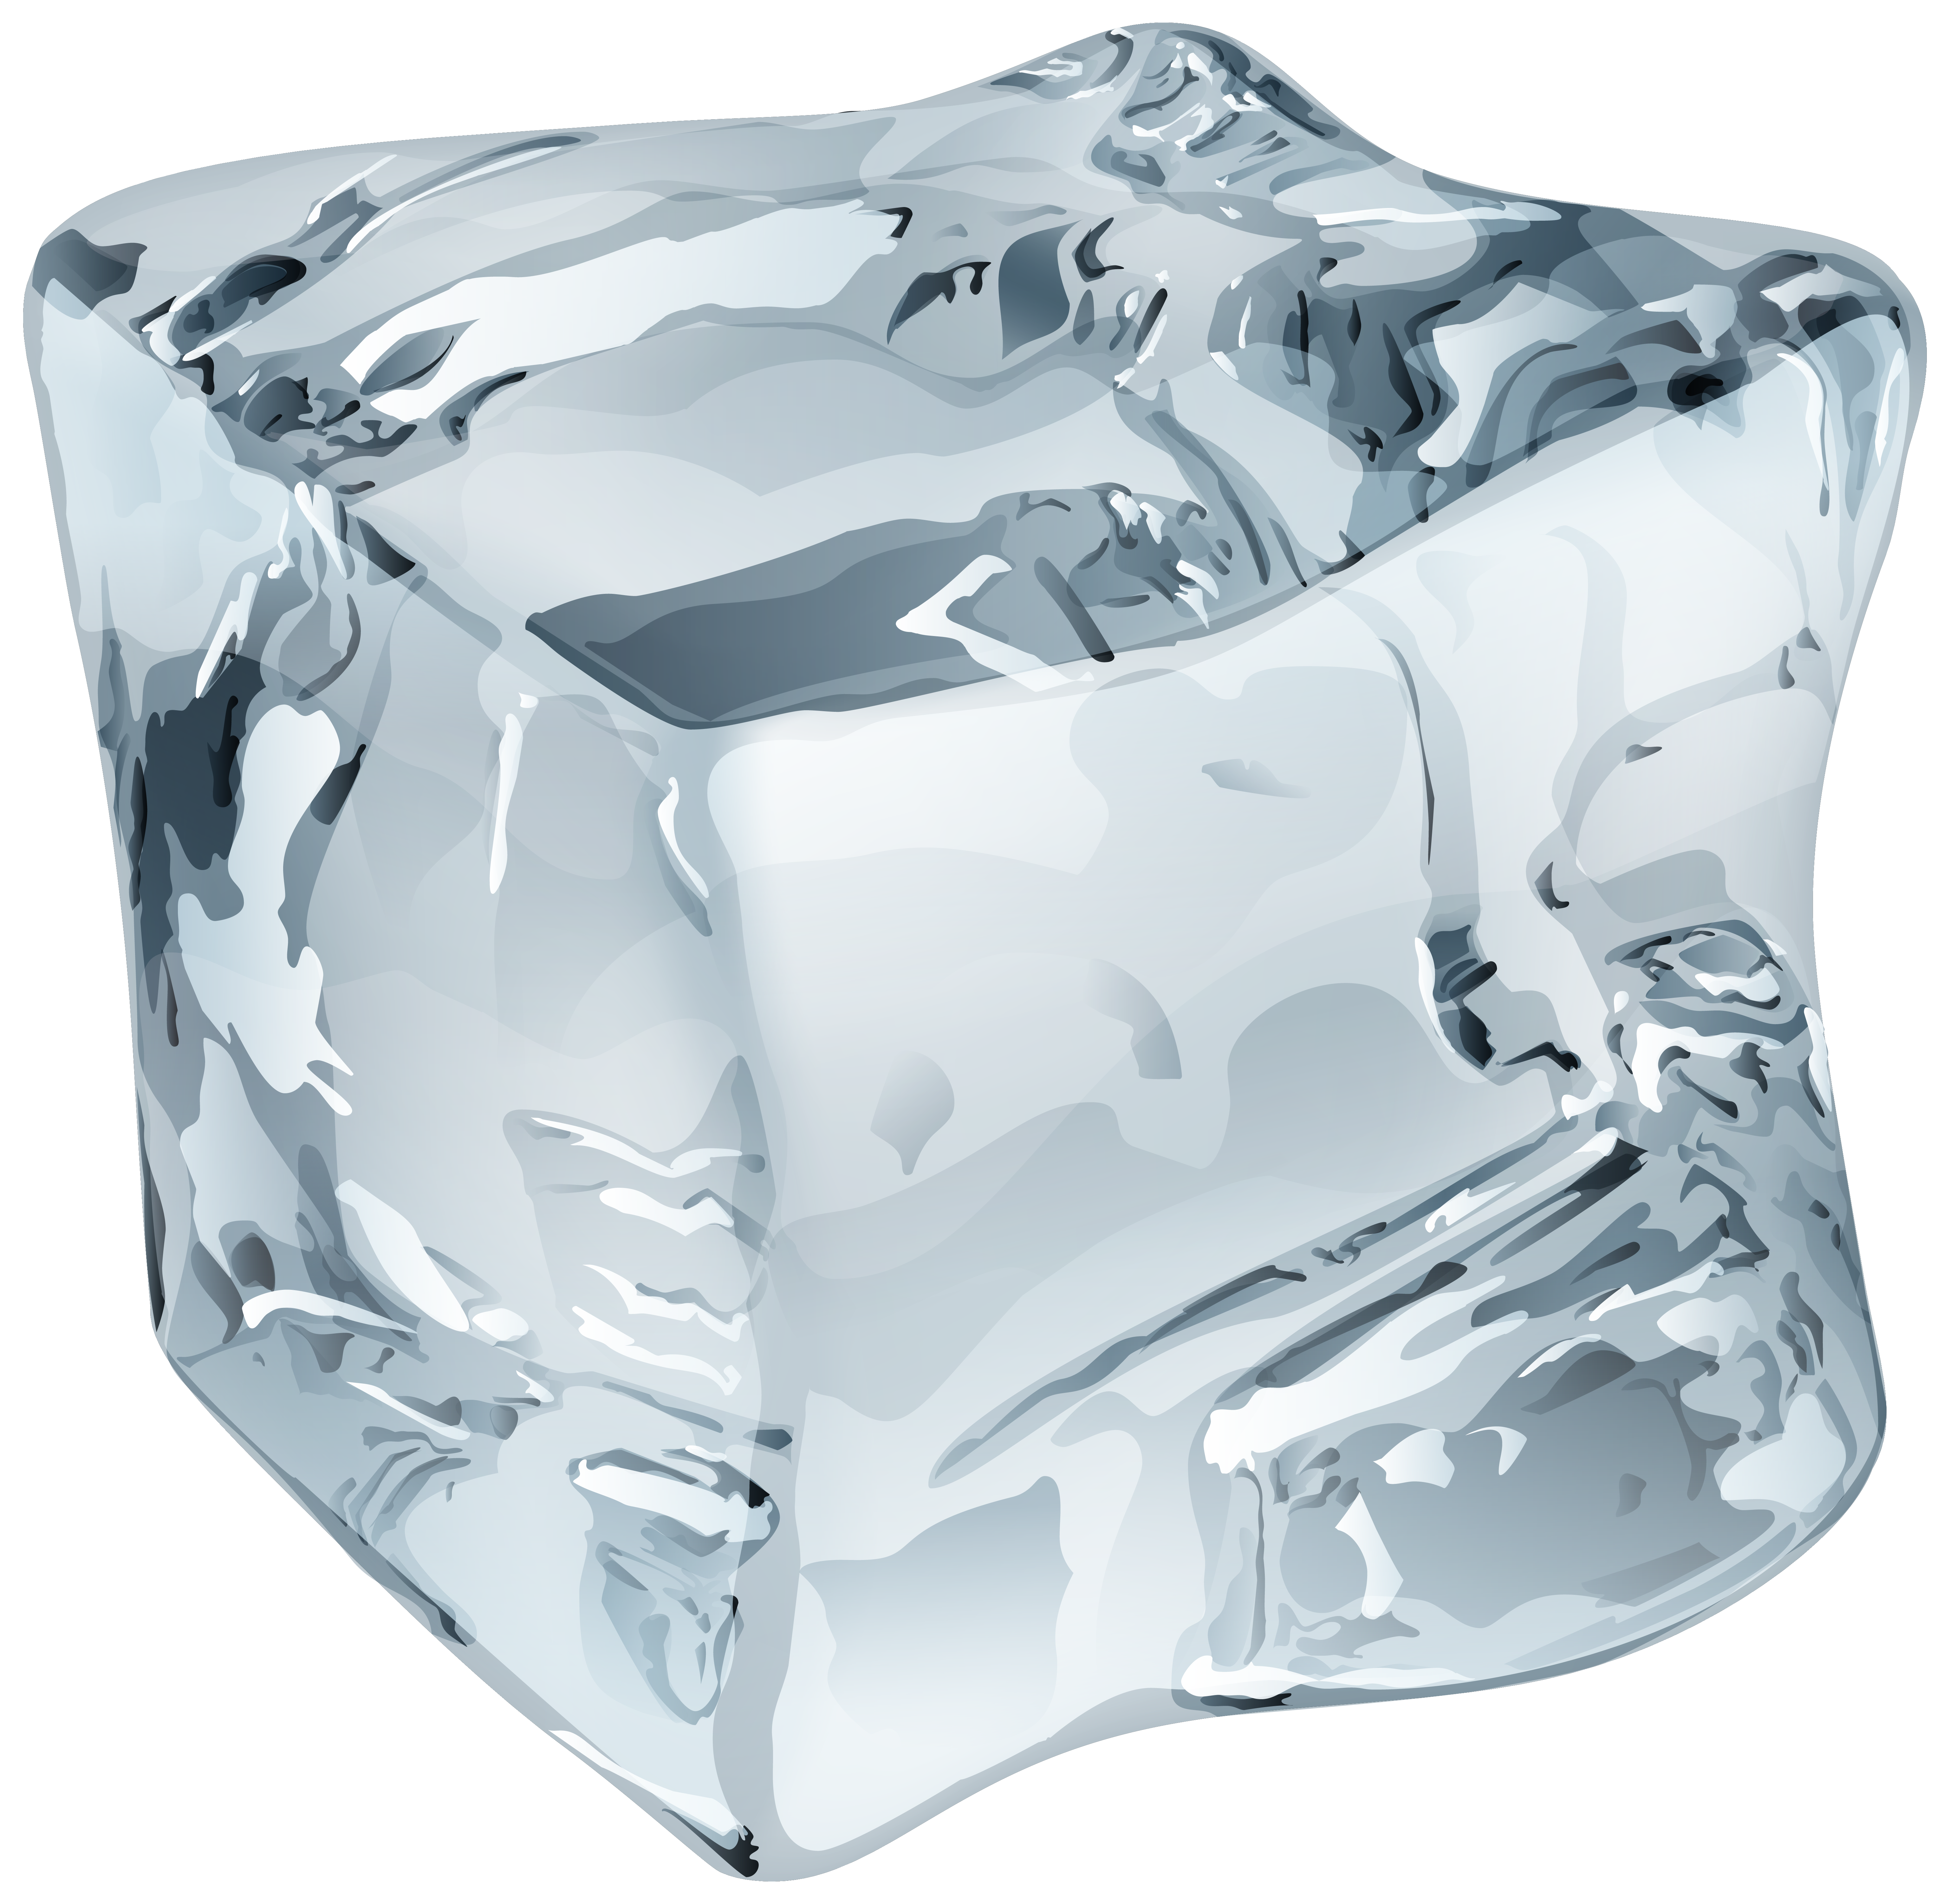 Ice cube png clip. Crystal clipart large